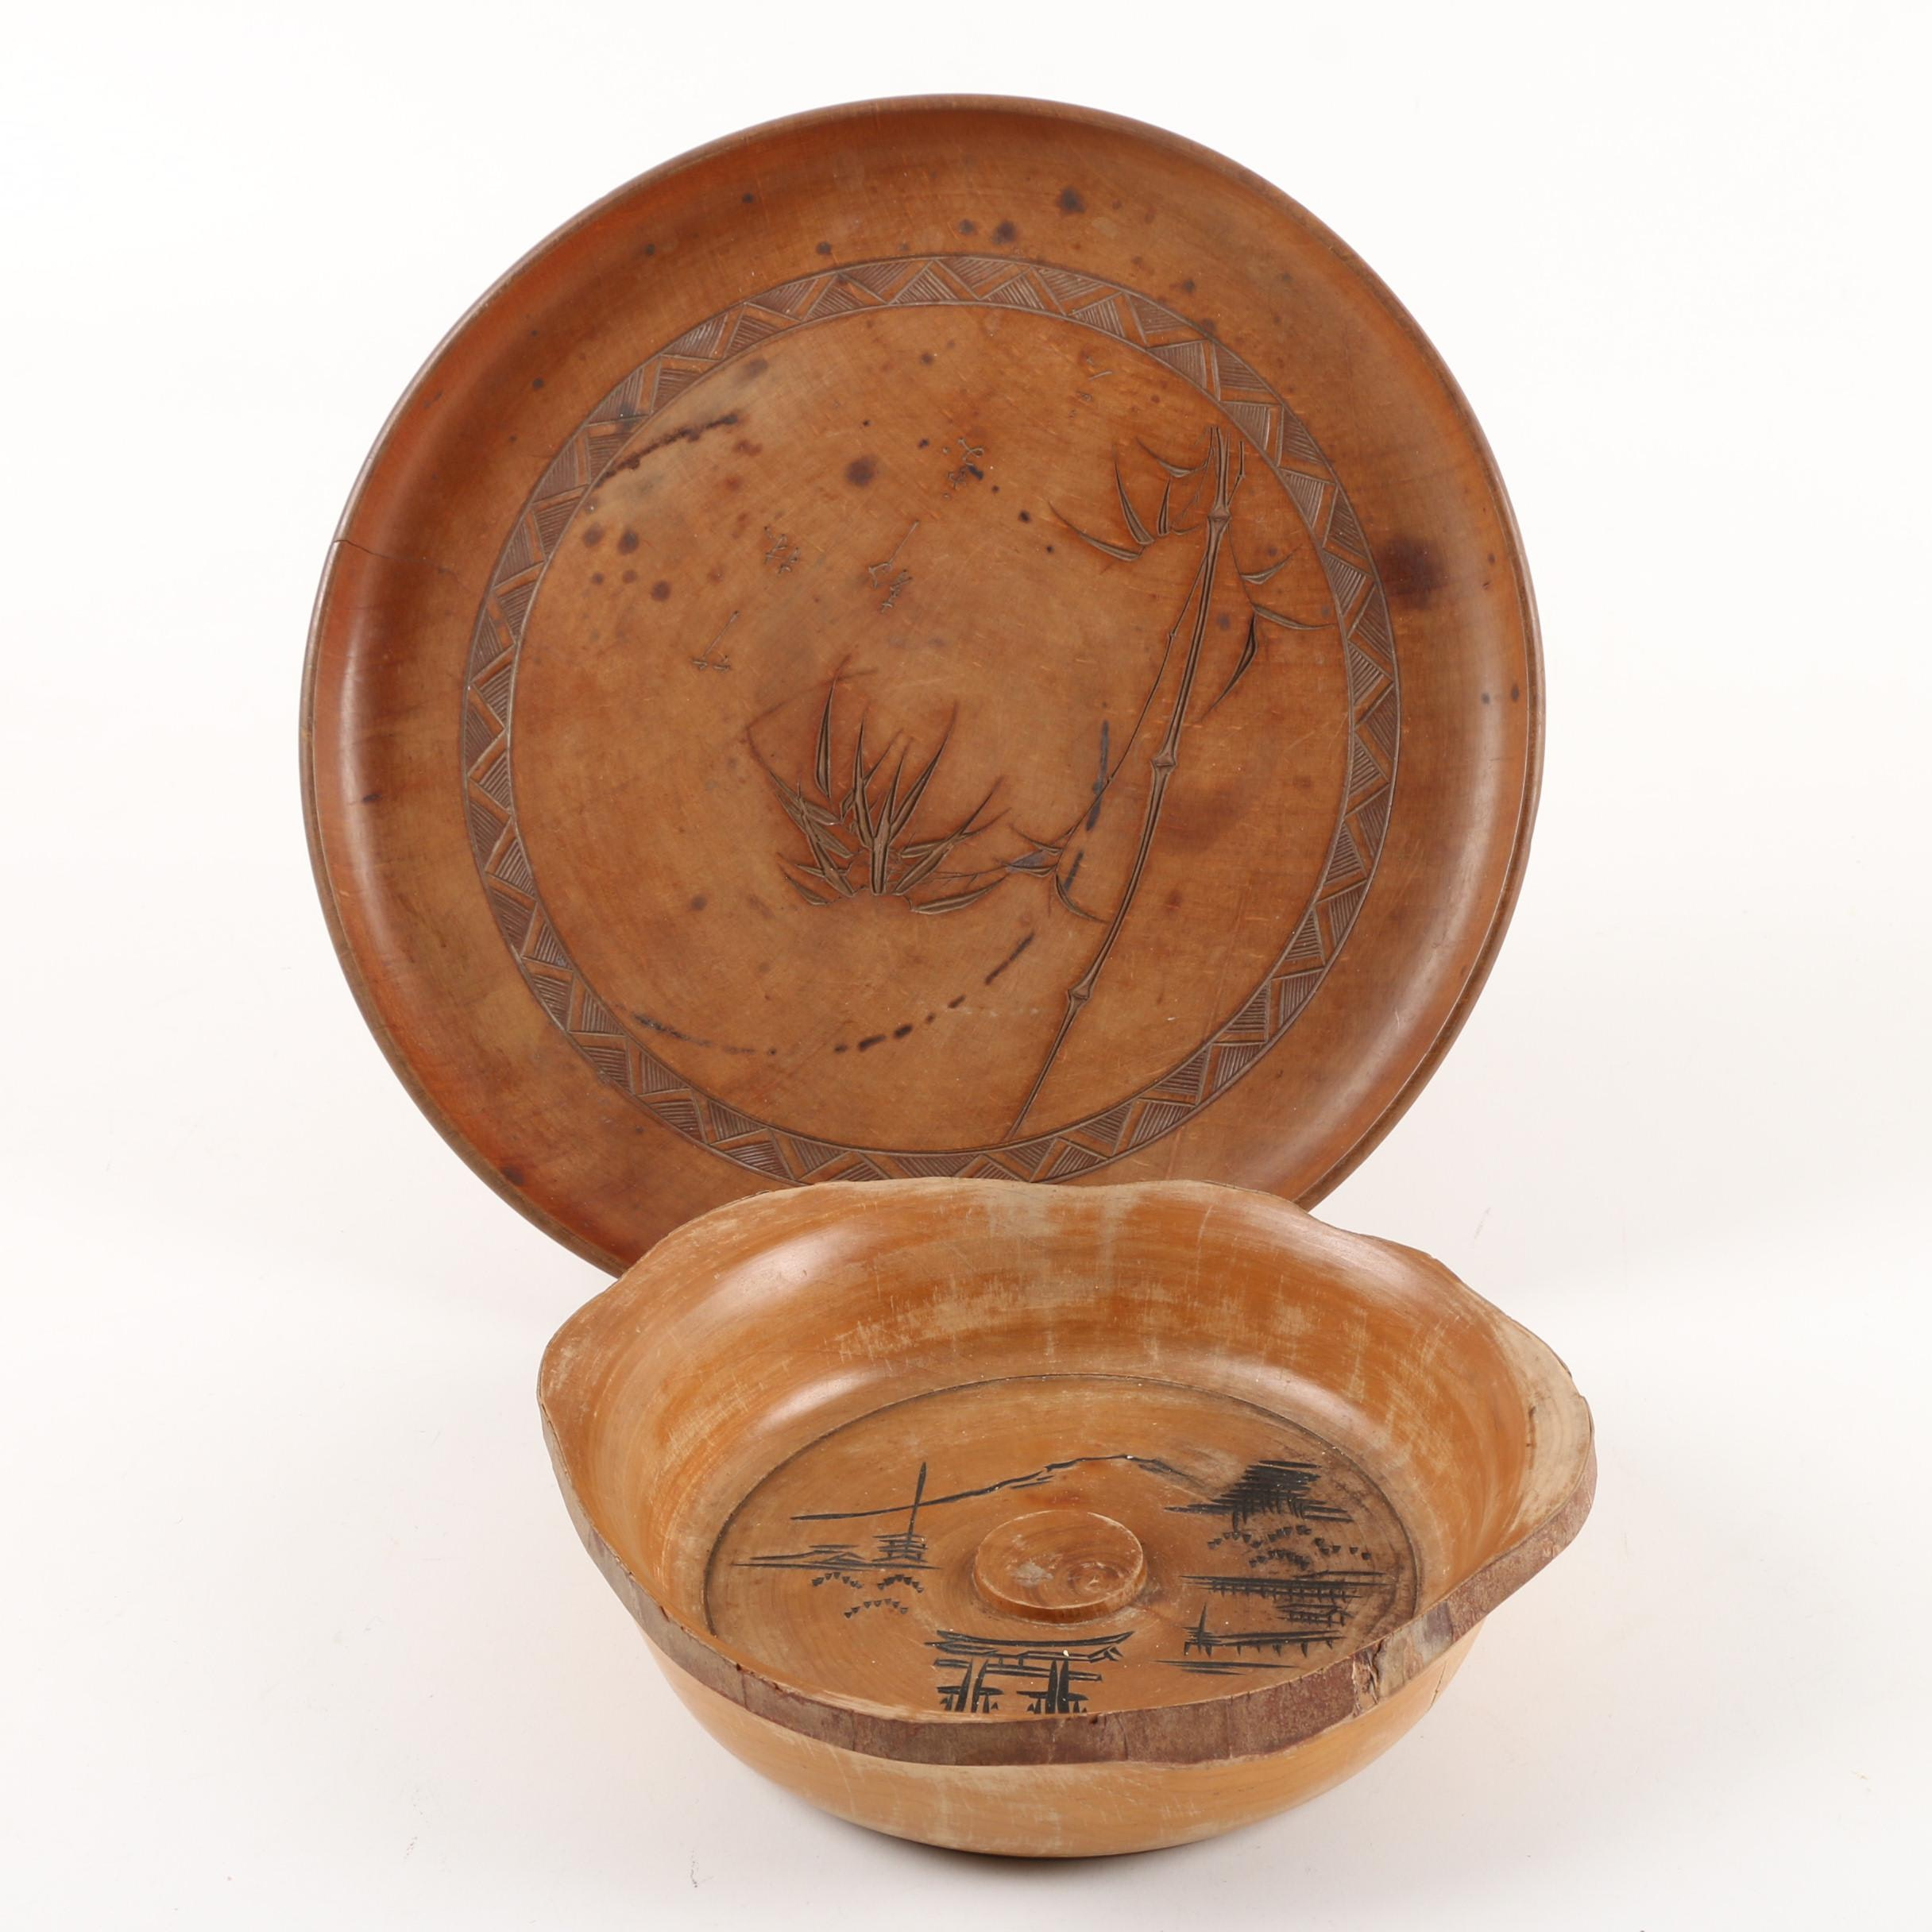 Vintage East Asian Hand-Incised Wooden Bowl and Plate